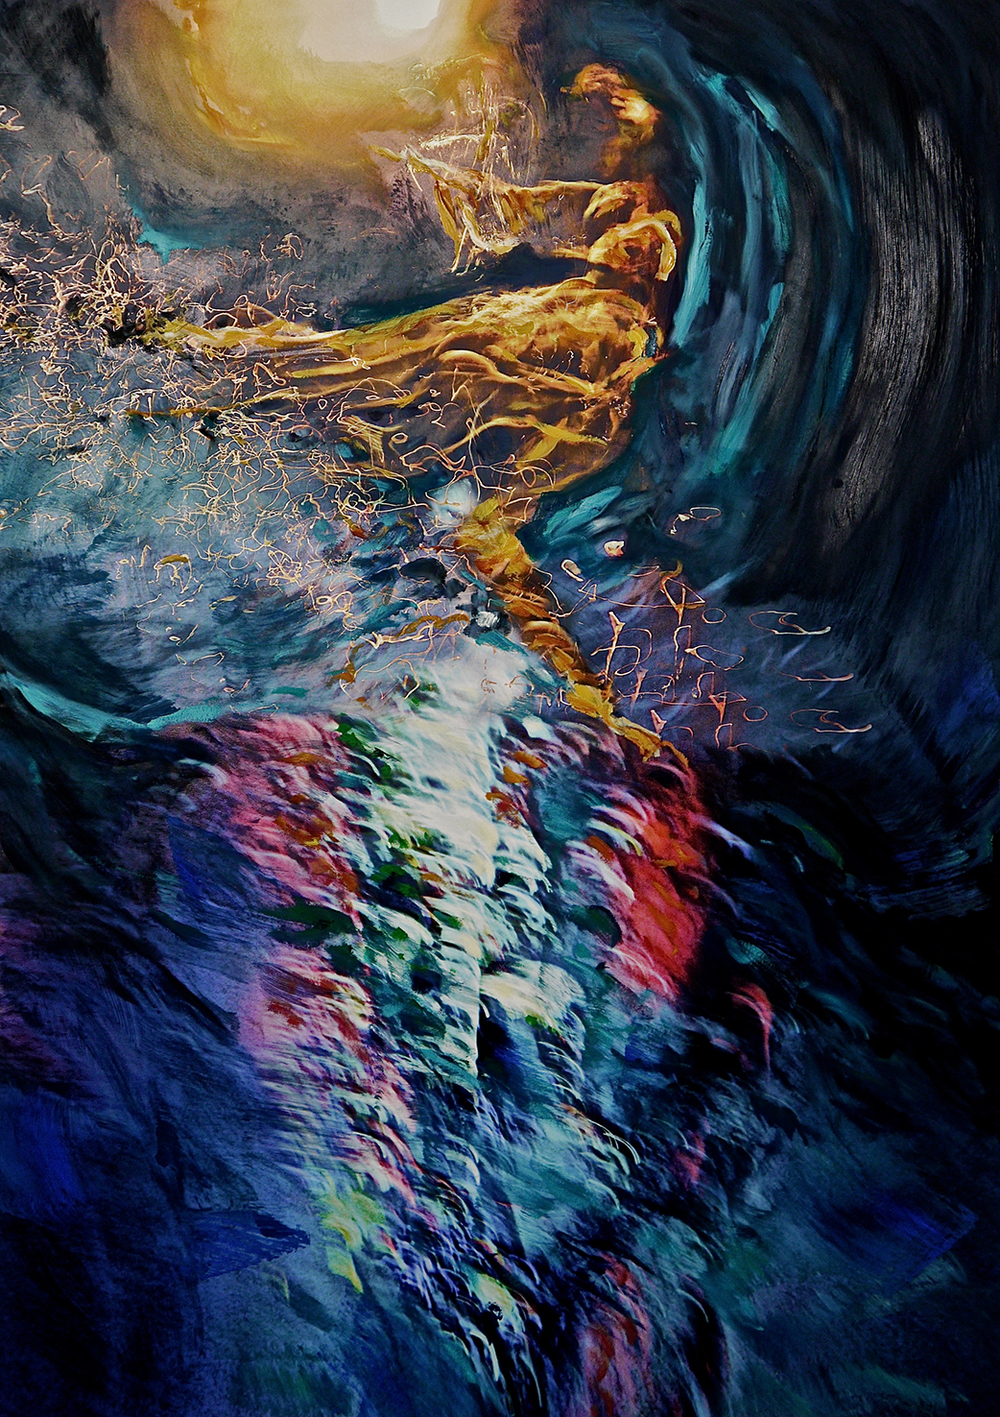 Andrew Hart Adler  Aqua Lady V  Mixed media and digital print on canvas  192 x 137 cm